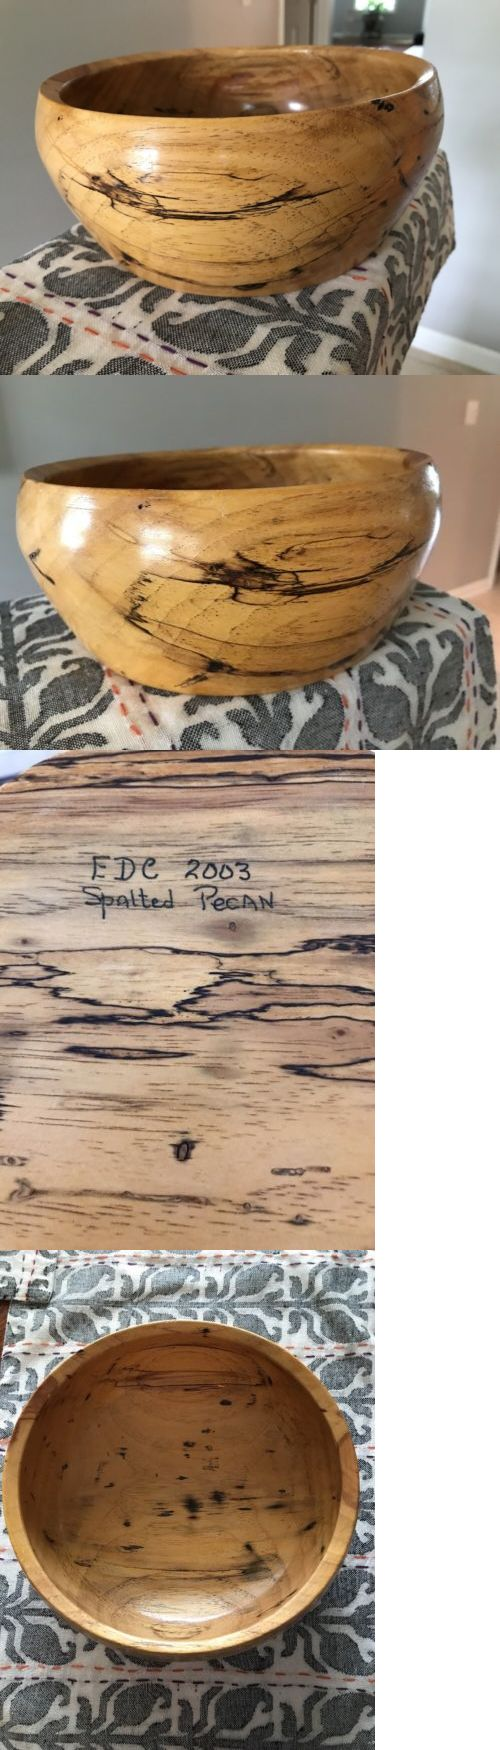 Wood Items 108866: Spalted Pecan Wood Hand Turned Bowl By Edc 2003 8 D X 4 H -> BUY IT NOW ONLY: $85 on eBay!